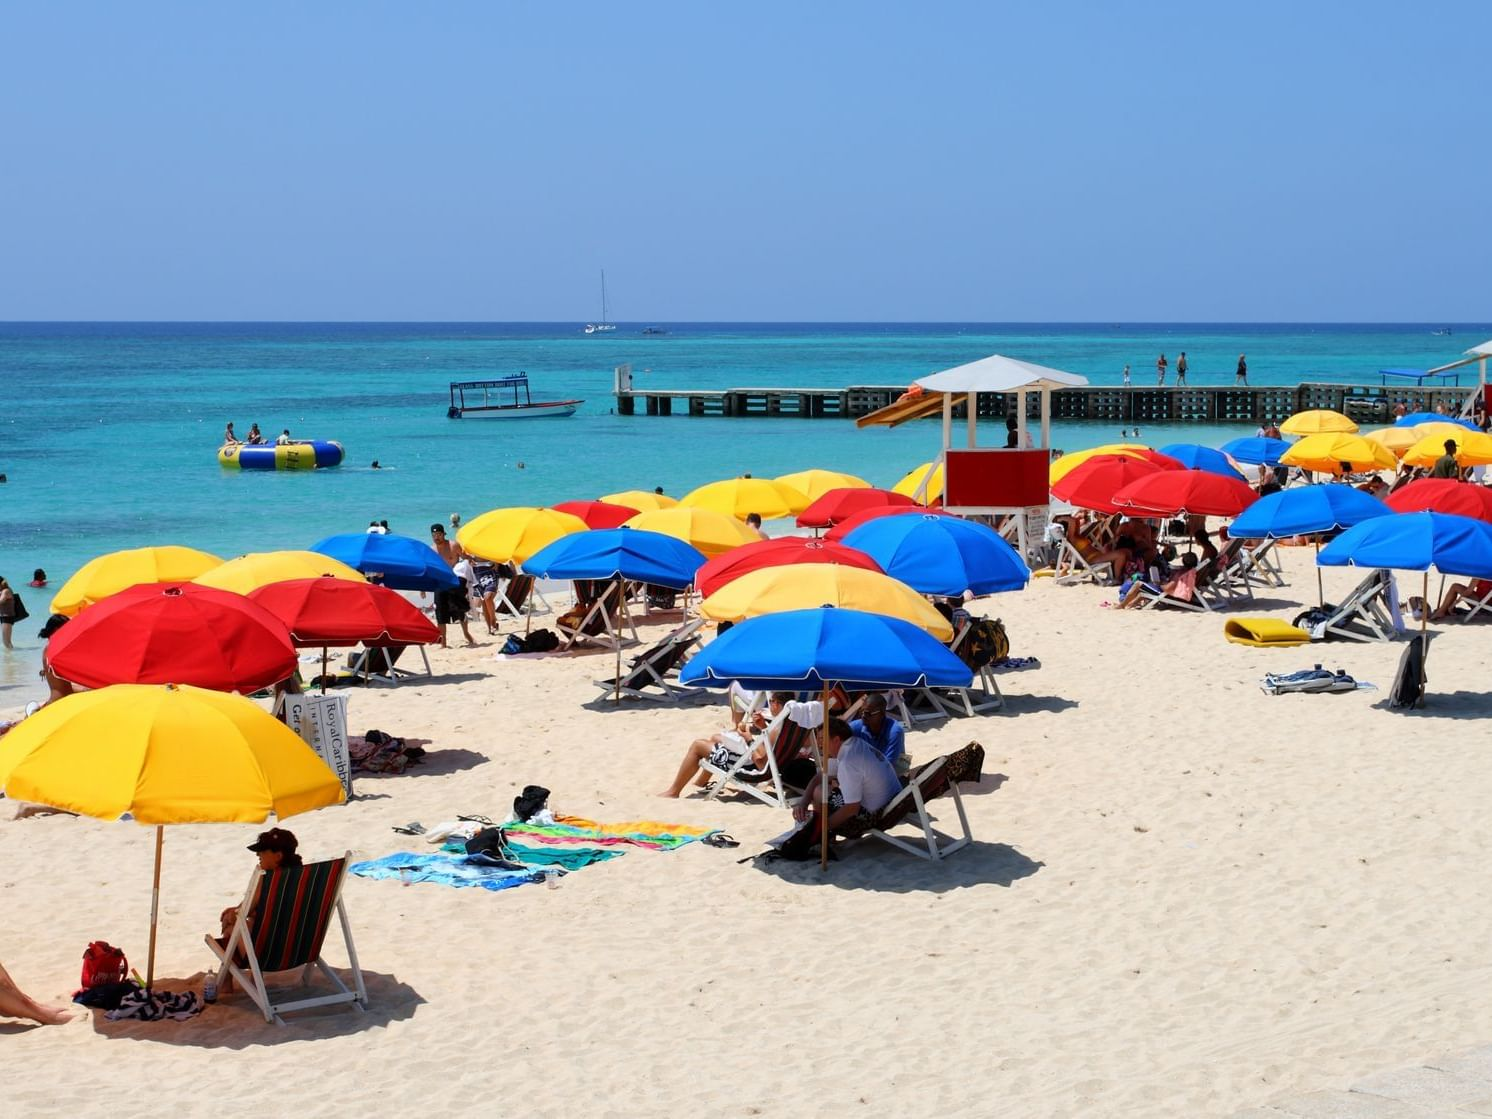 Jamaica Public Beach with people by the beach under colorful umbrellas